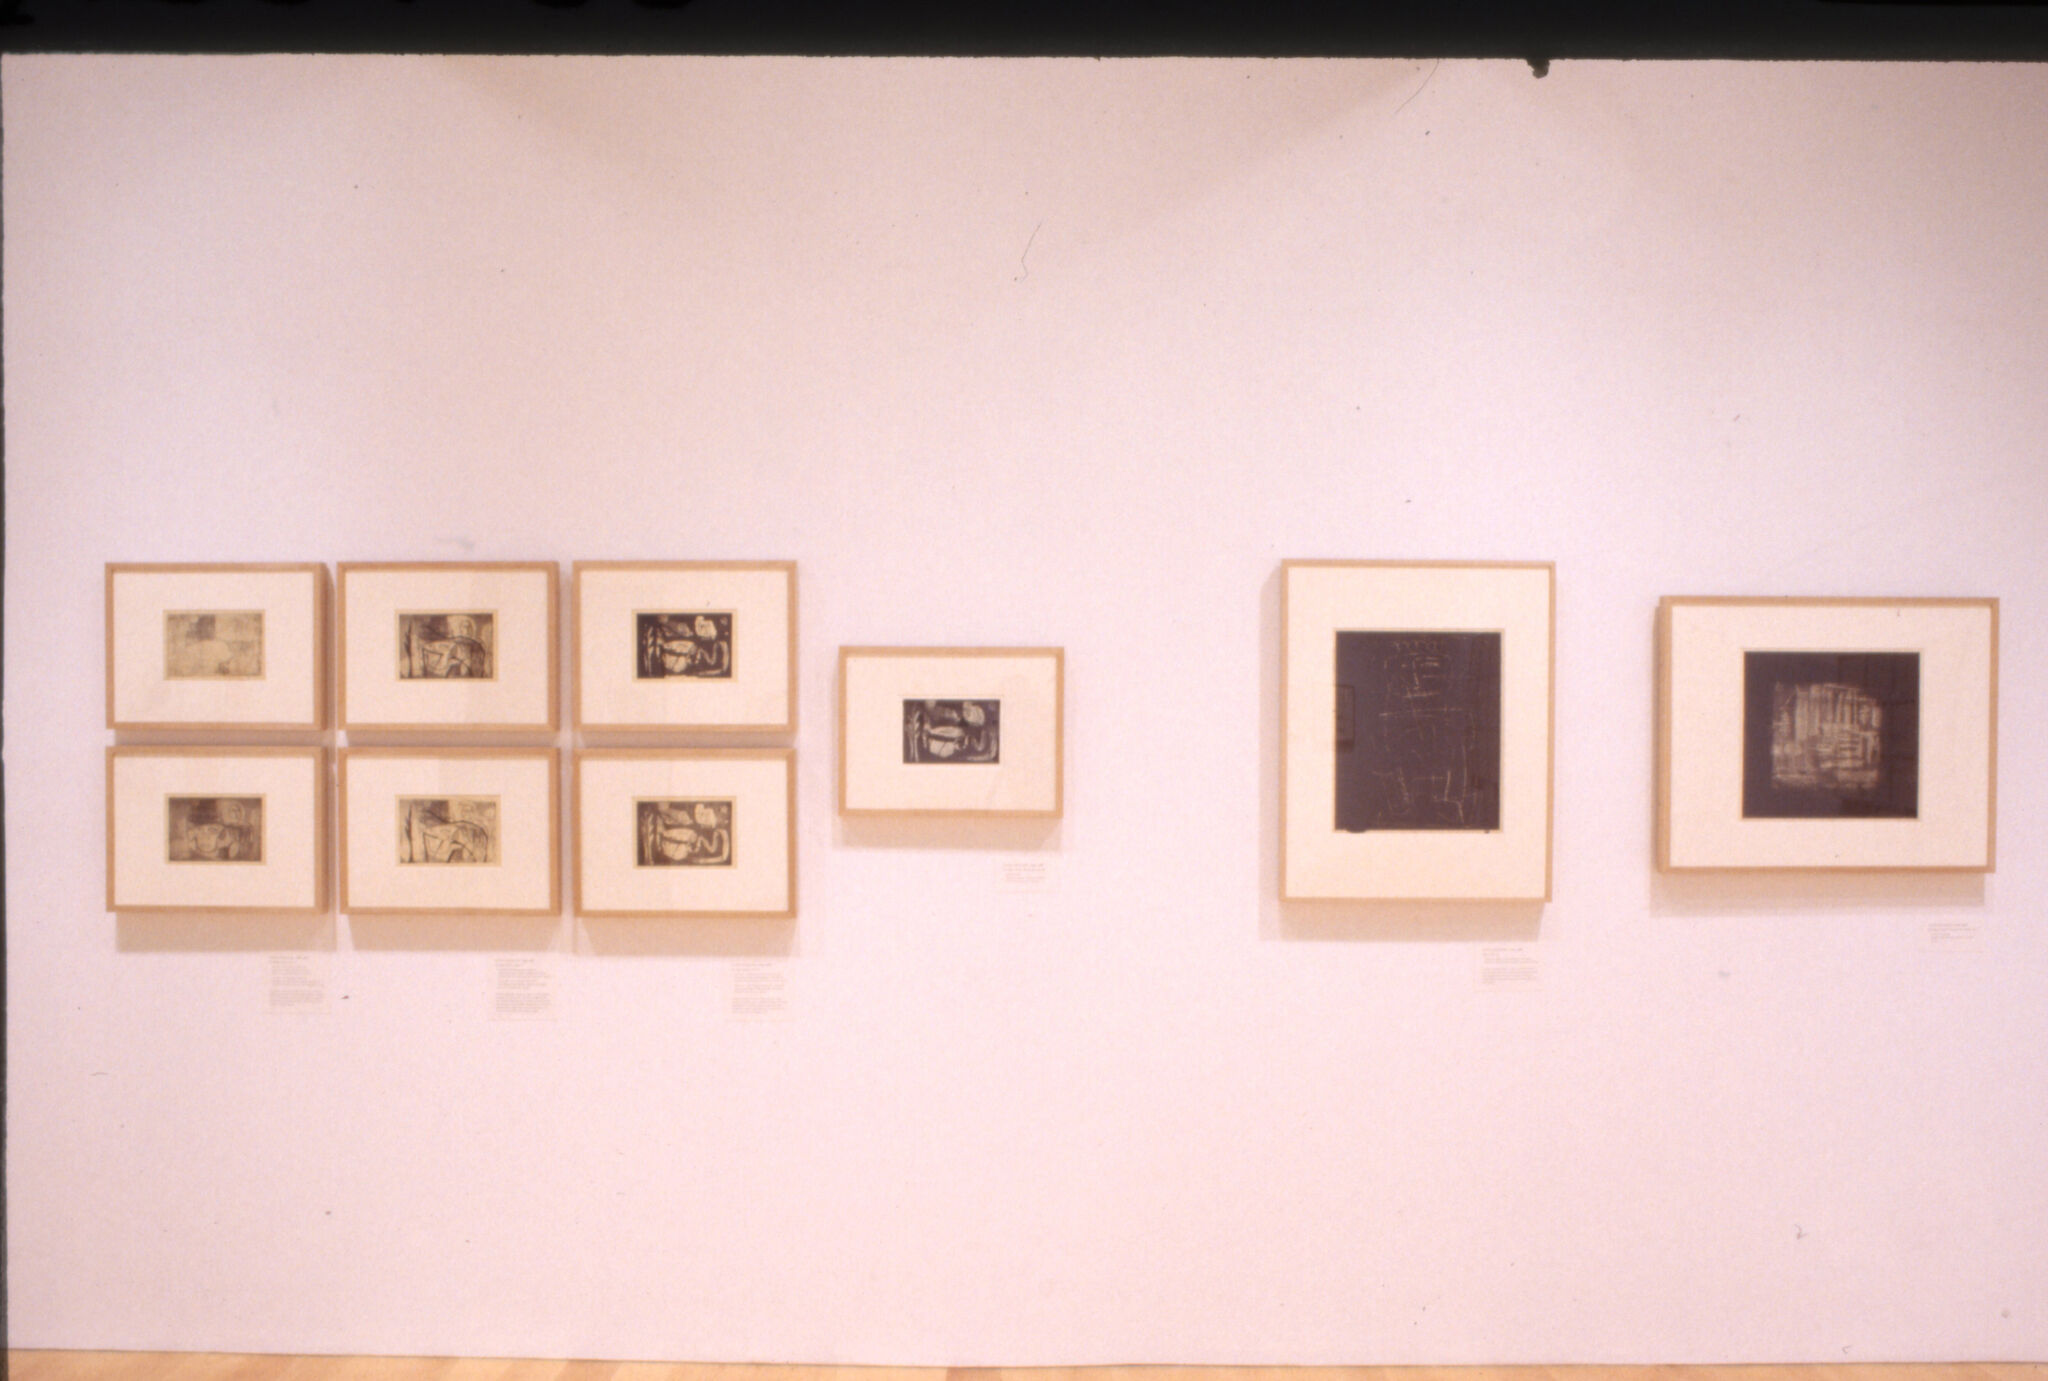 Prints displayed in frames on a wall in a gallery.